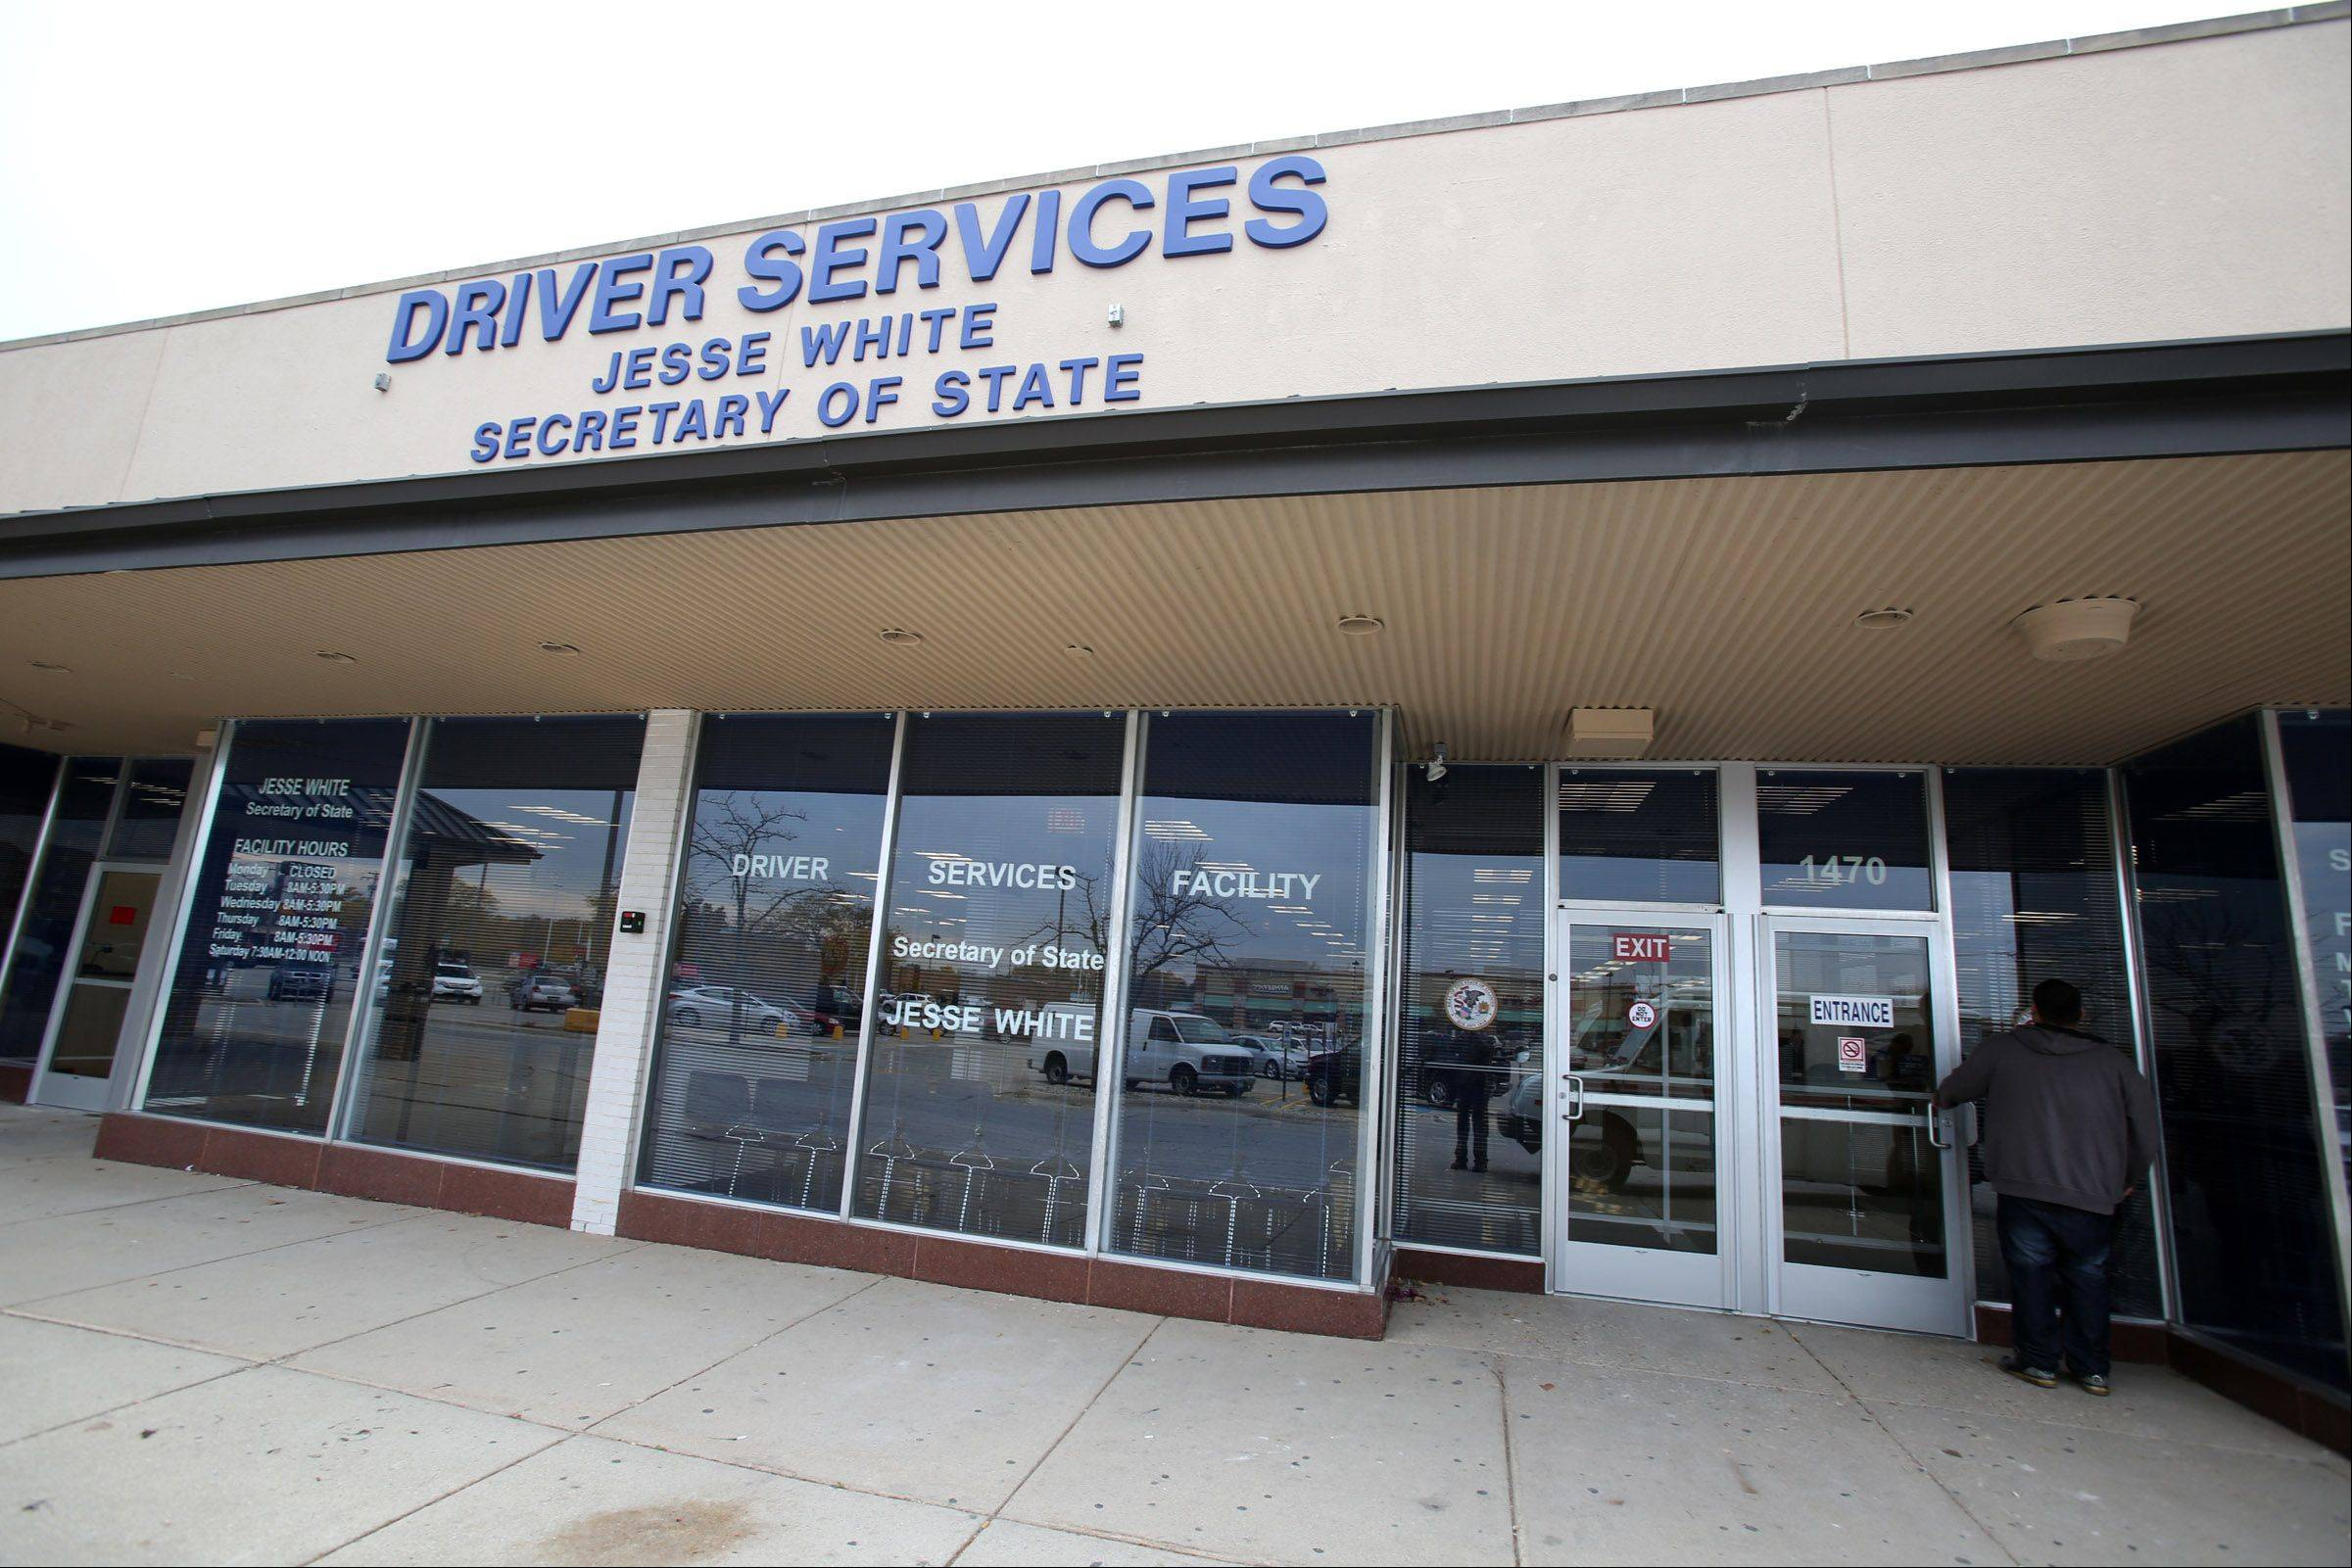 A new secretary of state driver services facility opened Tuesday at the Oak Leaf Commons strip mall in Des Plaines.